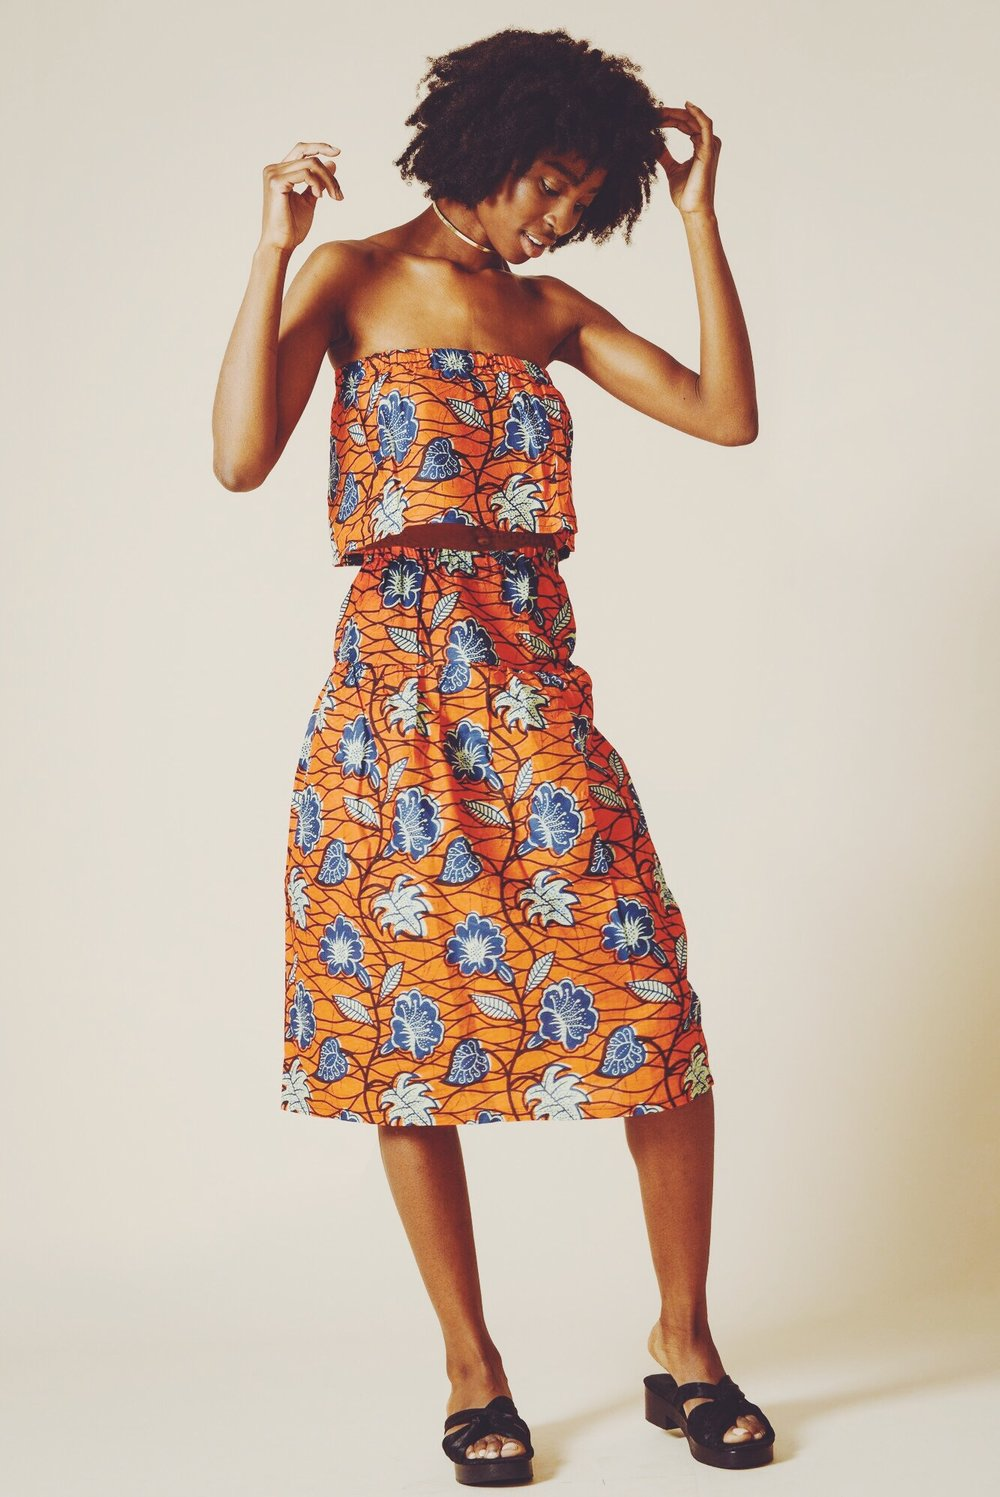 Rhumaa collaborates with talented artists from developing countries, like South Africa to create beautiful collections that combine local artwork with fashion design